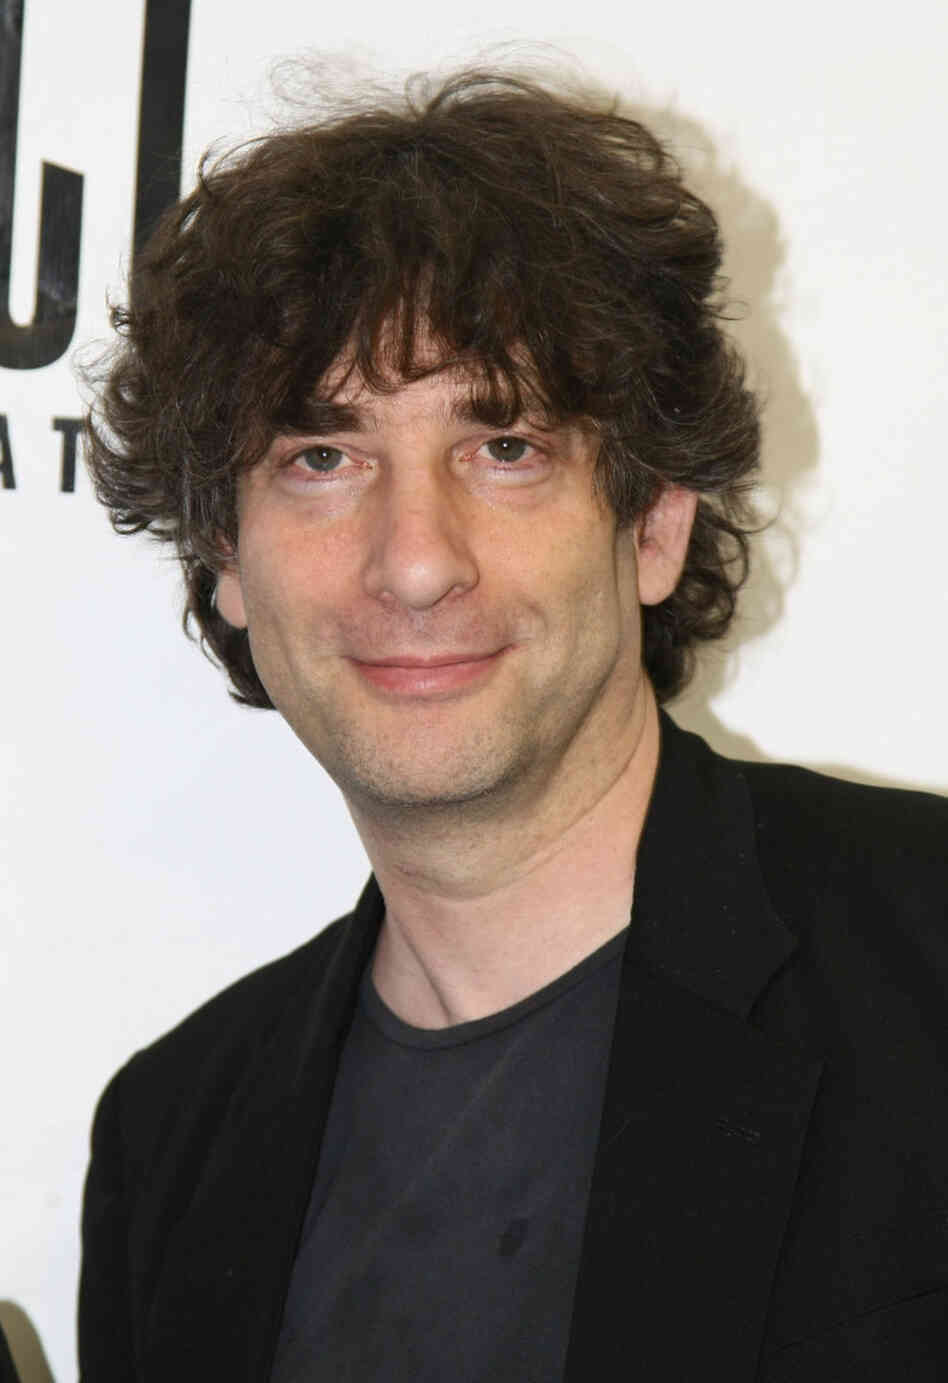 Author Neil Gaiman, seen here in 2009, is among the authors rallying to support radio broadcasts of short stories.